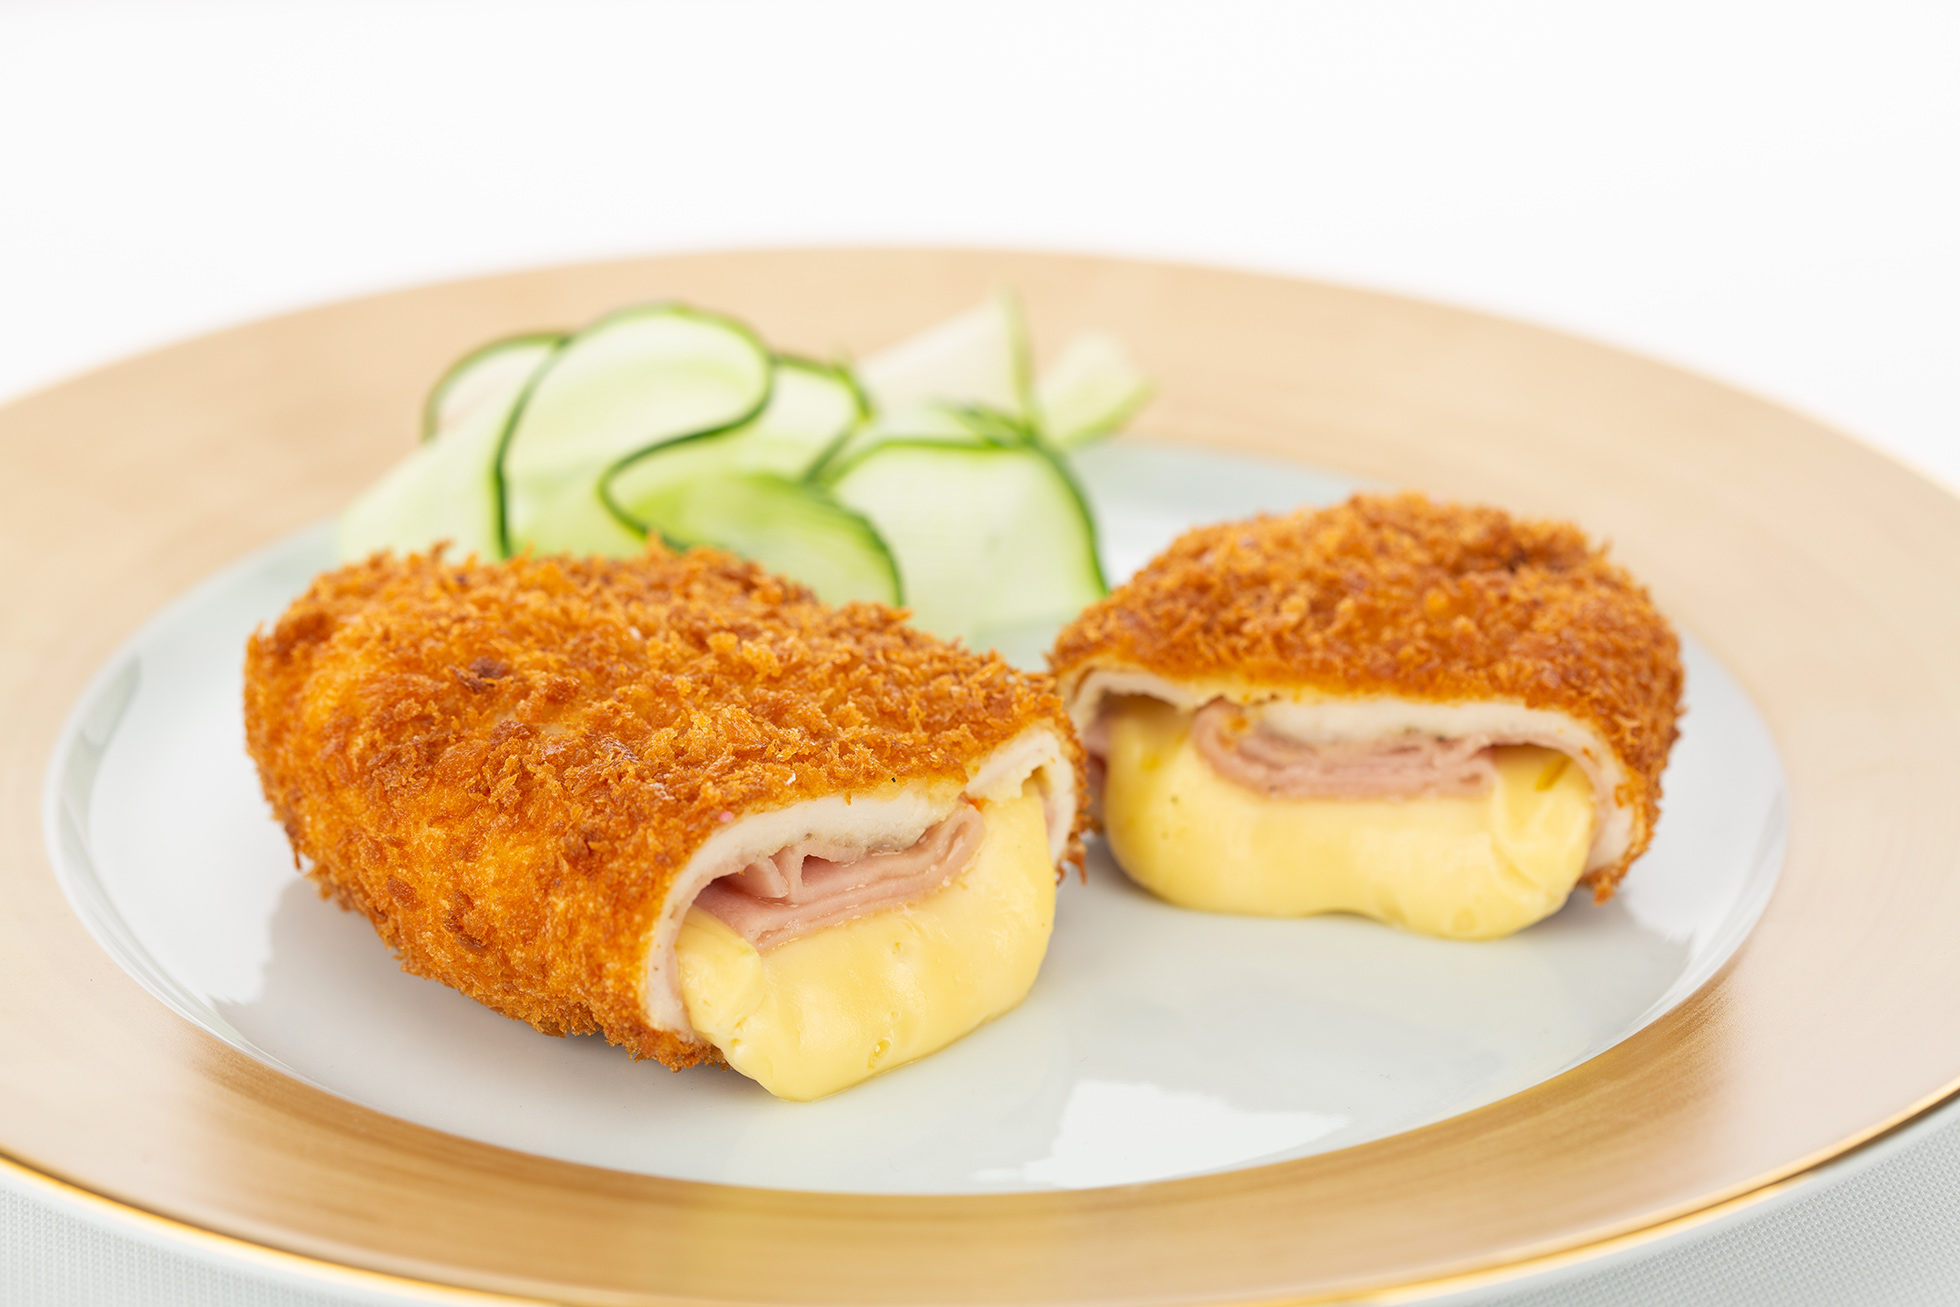 Cordon bleu with Charmidor